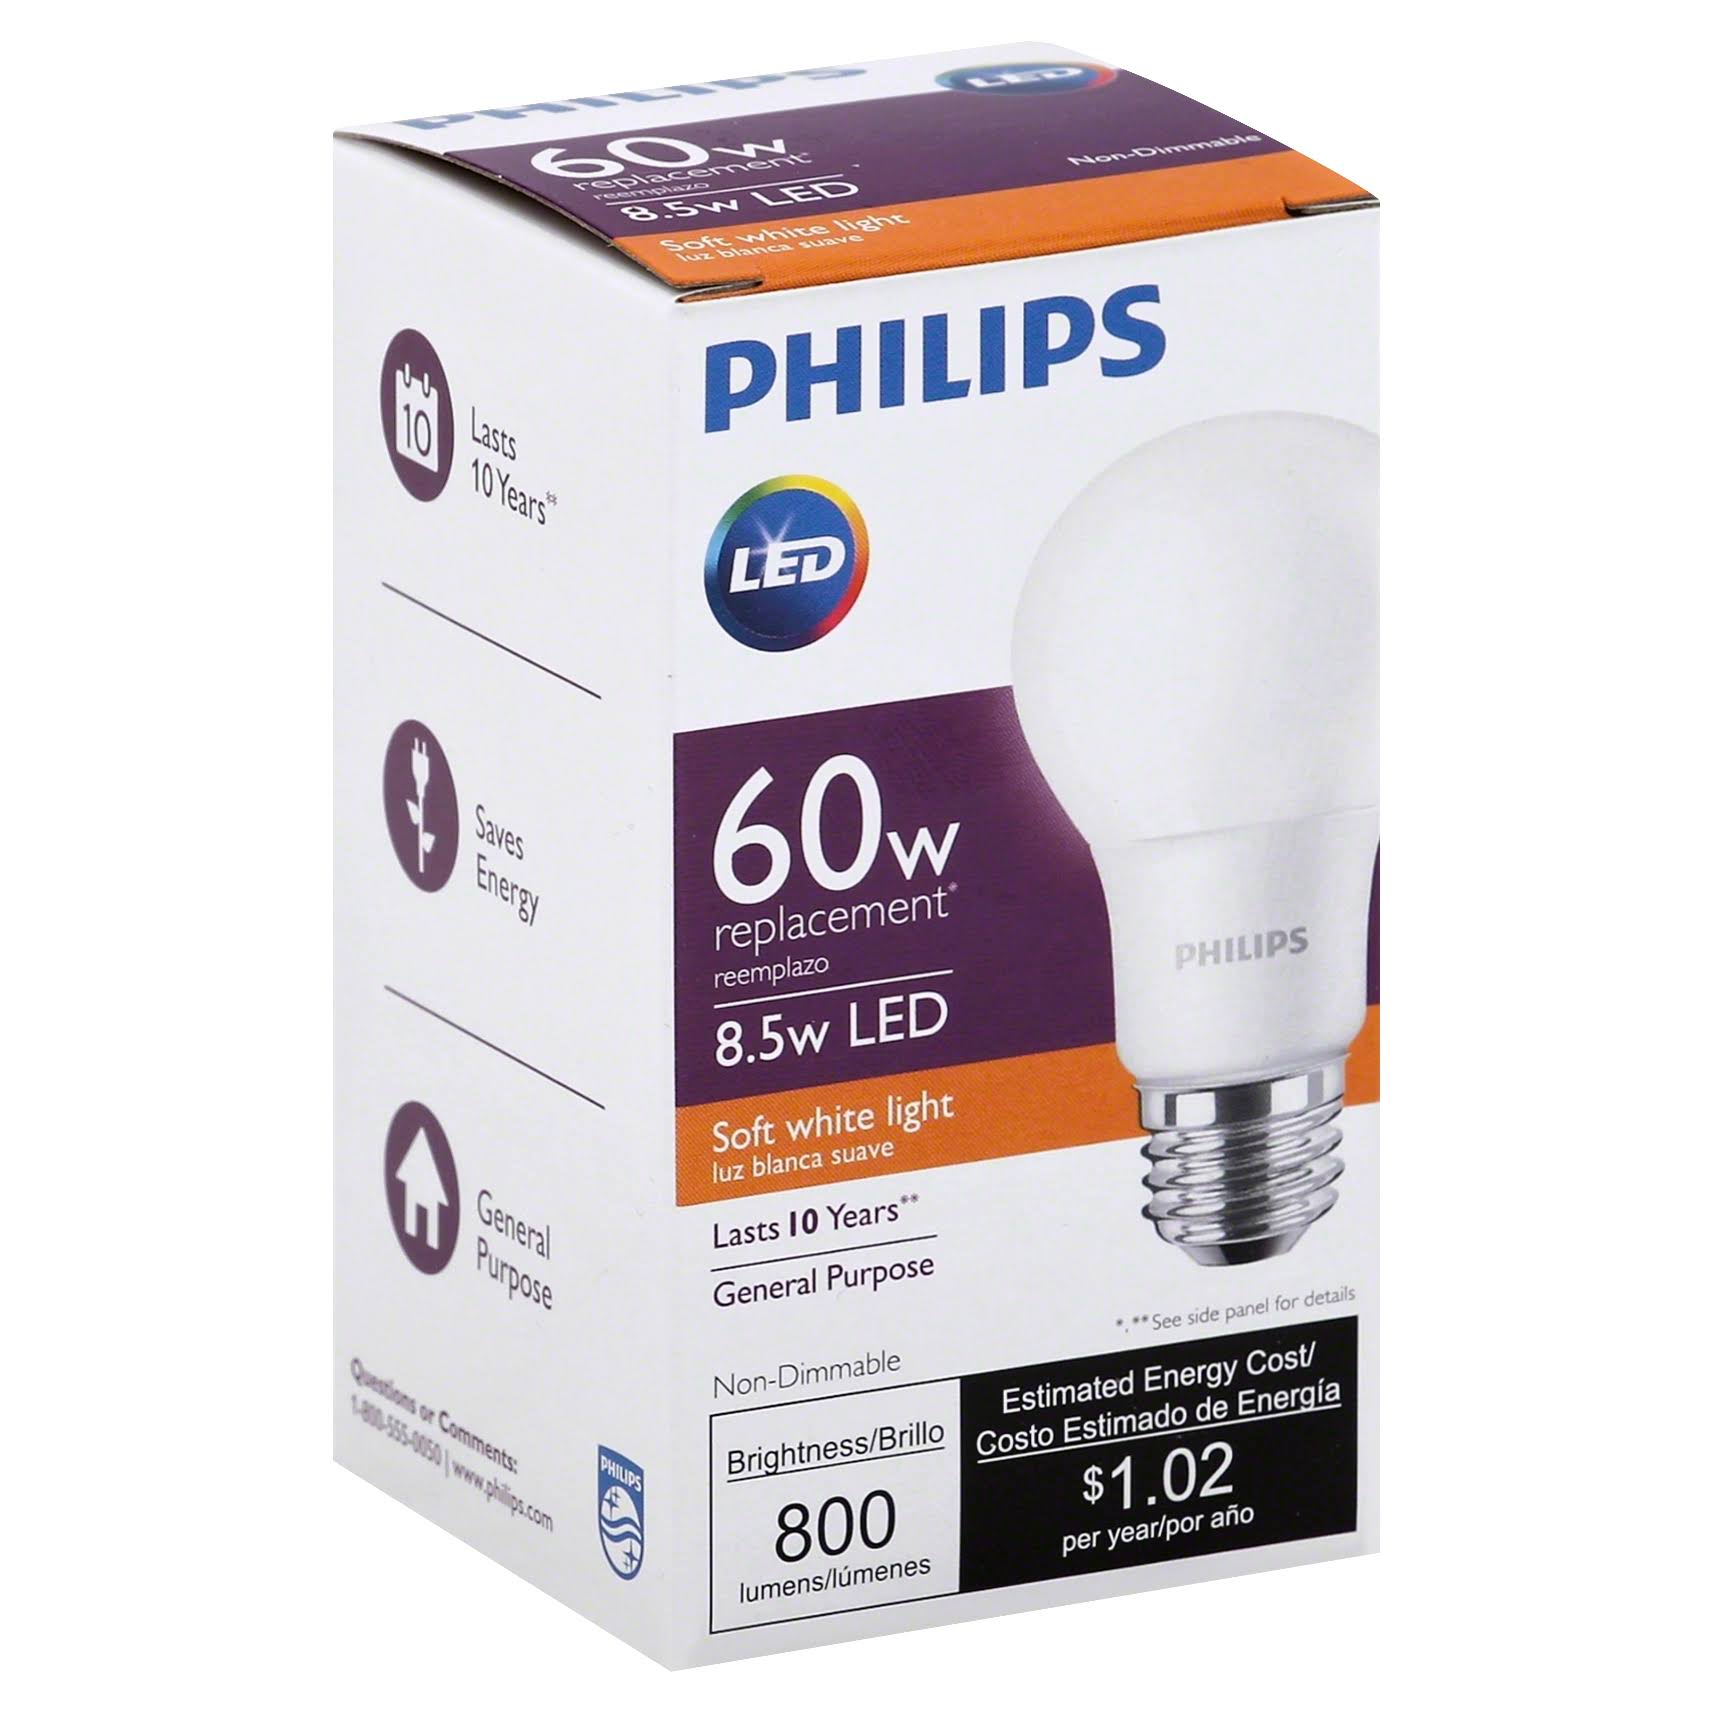 Philips Equivalent LED Light Bulbs - 60W, Soft White